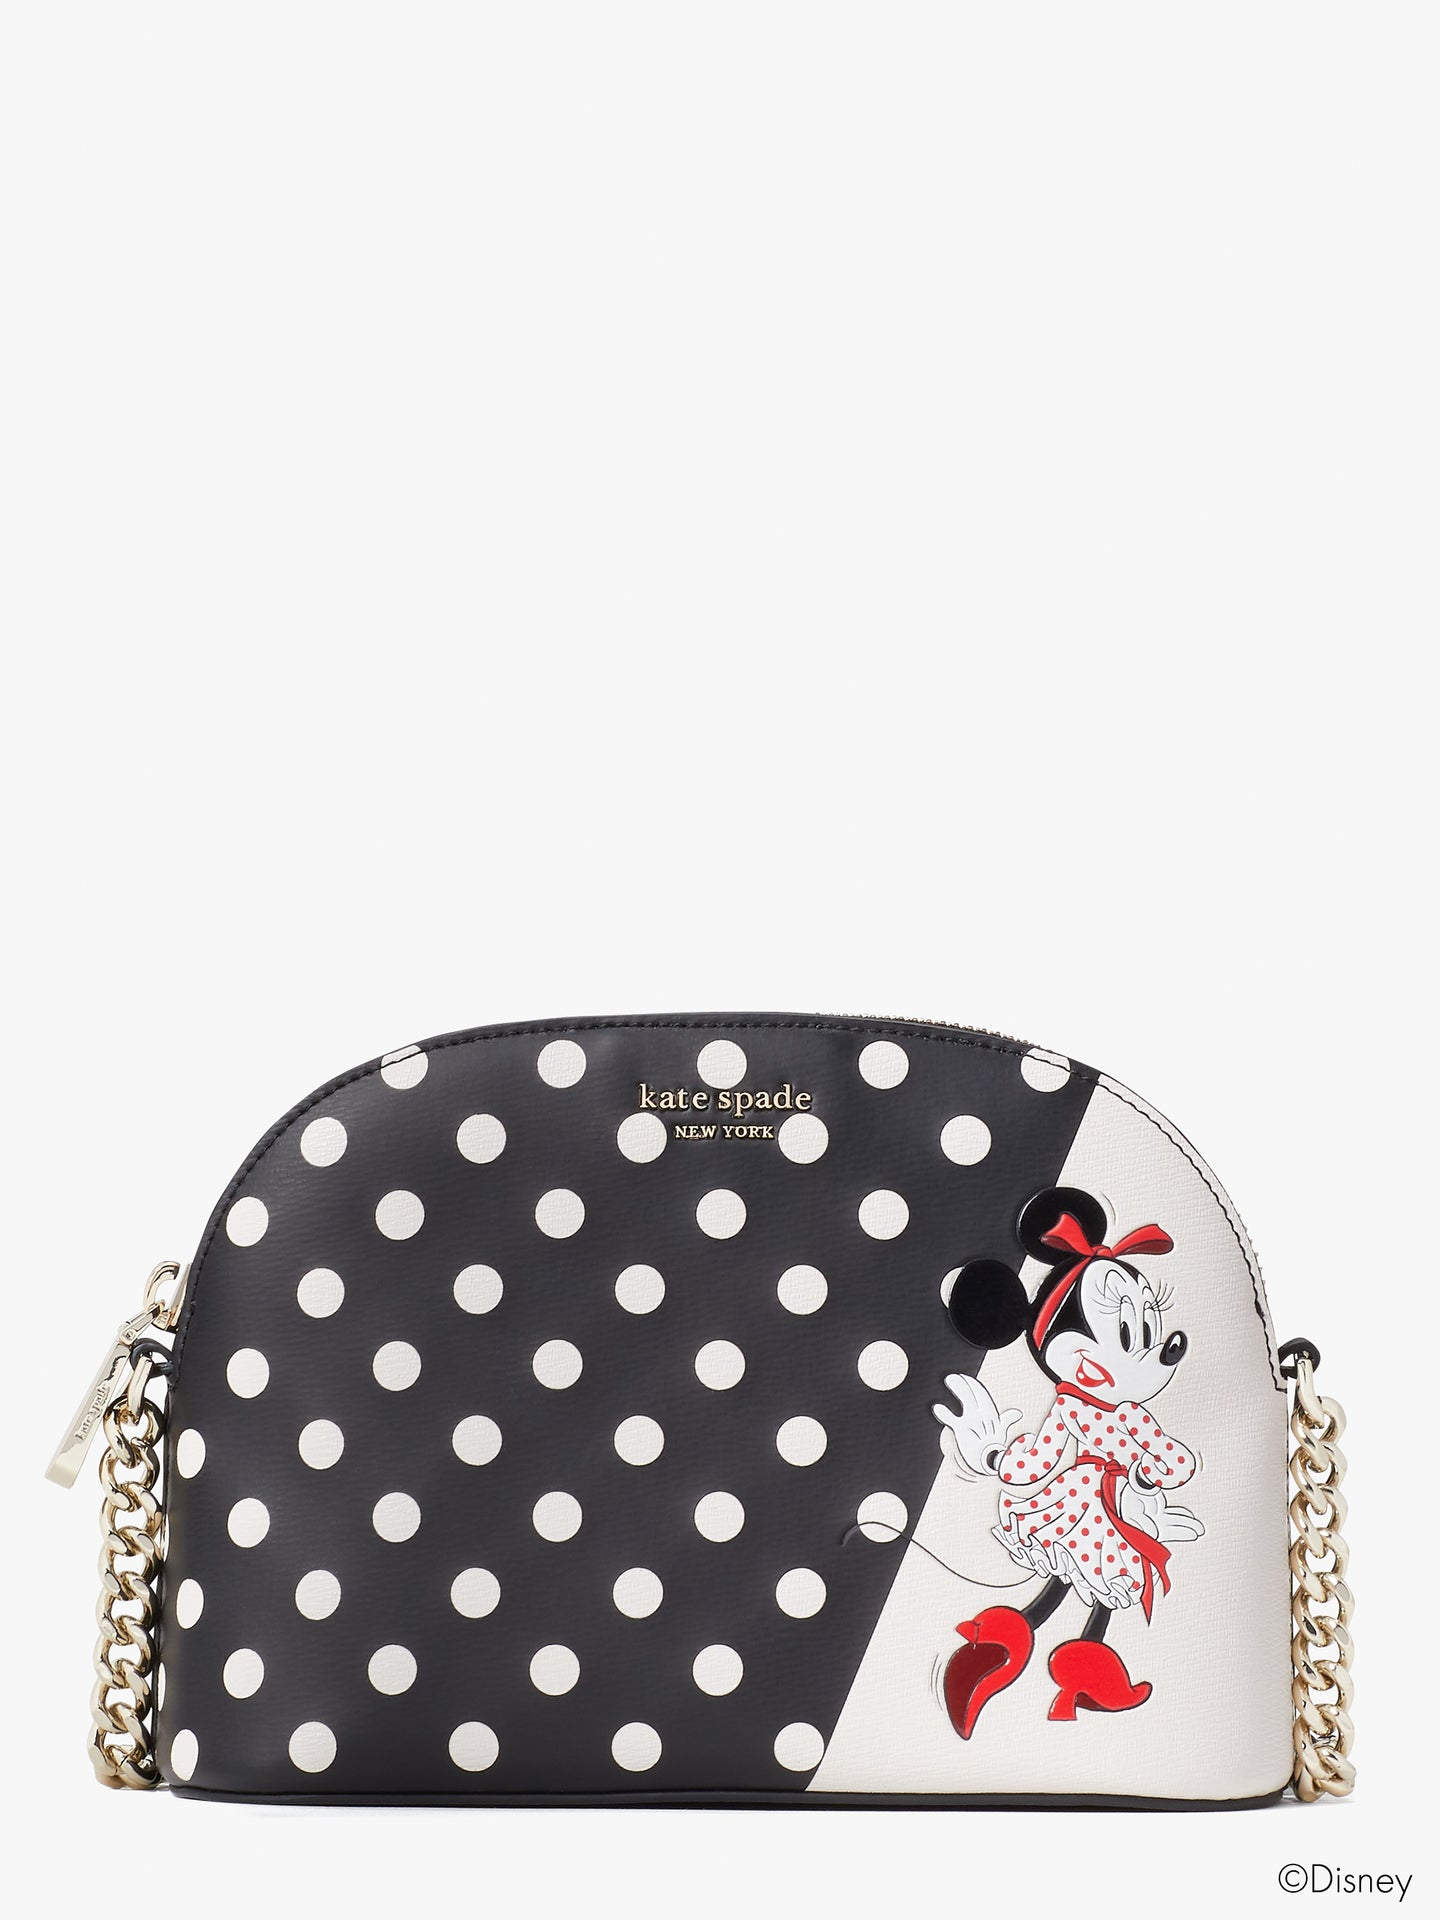 DISNEY X KATE SPADE NEW YORK MINNIE MOUSE SMALL DOME CROSSBODY